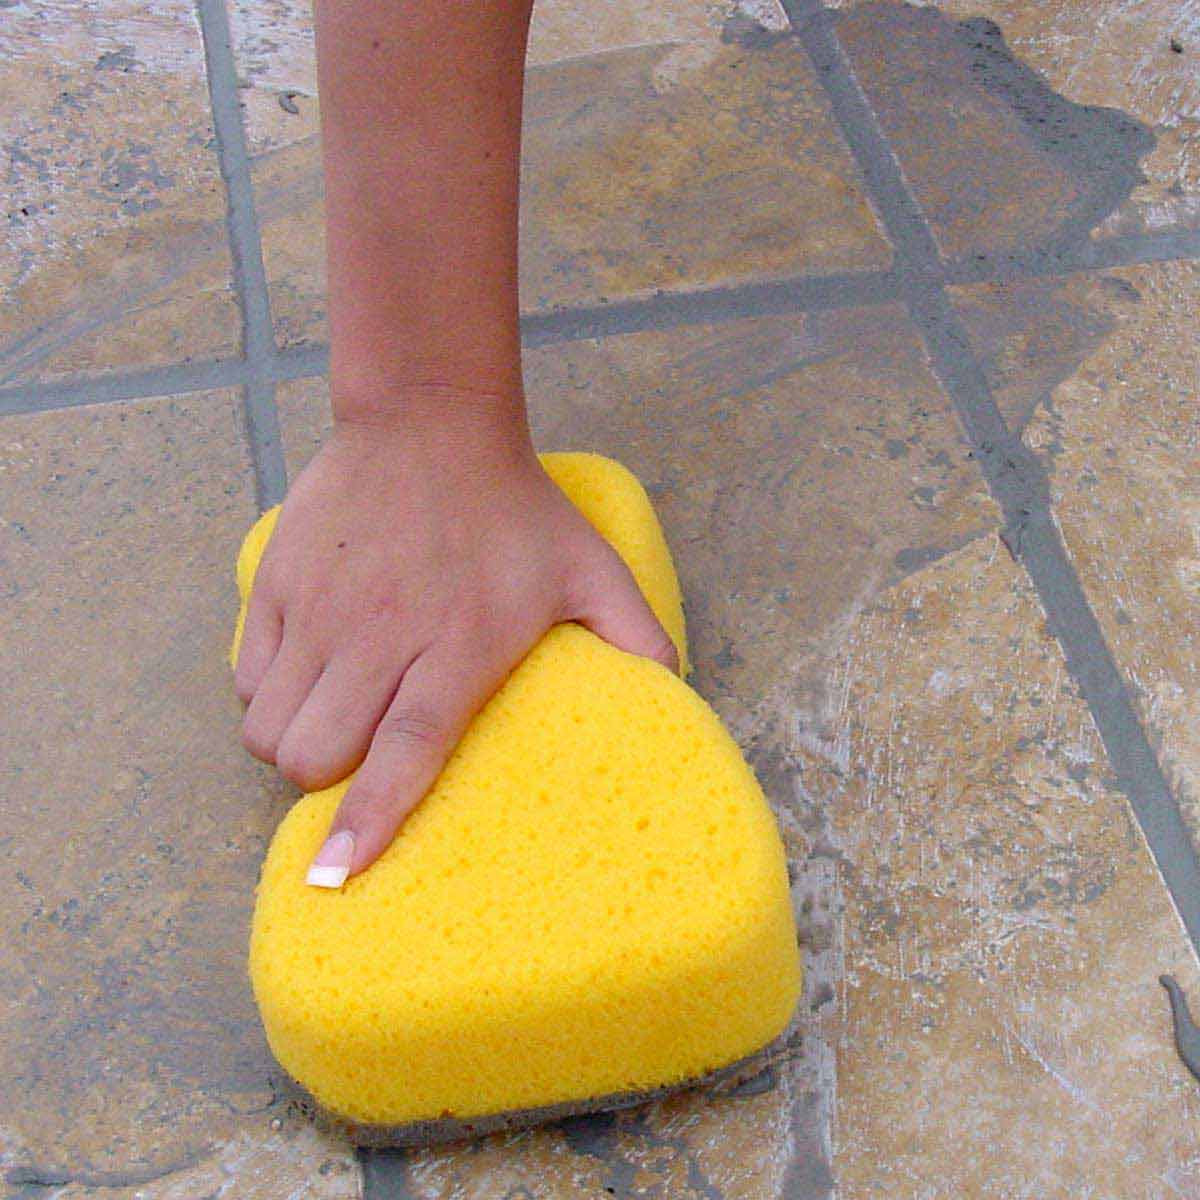 Cleaning with Tile Grout Sponge